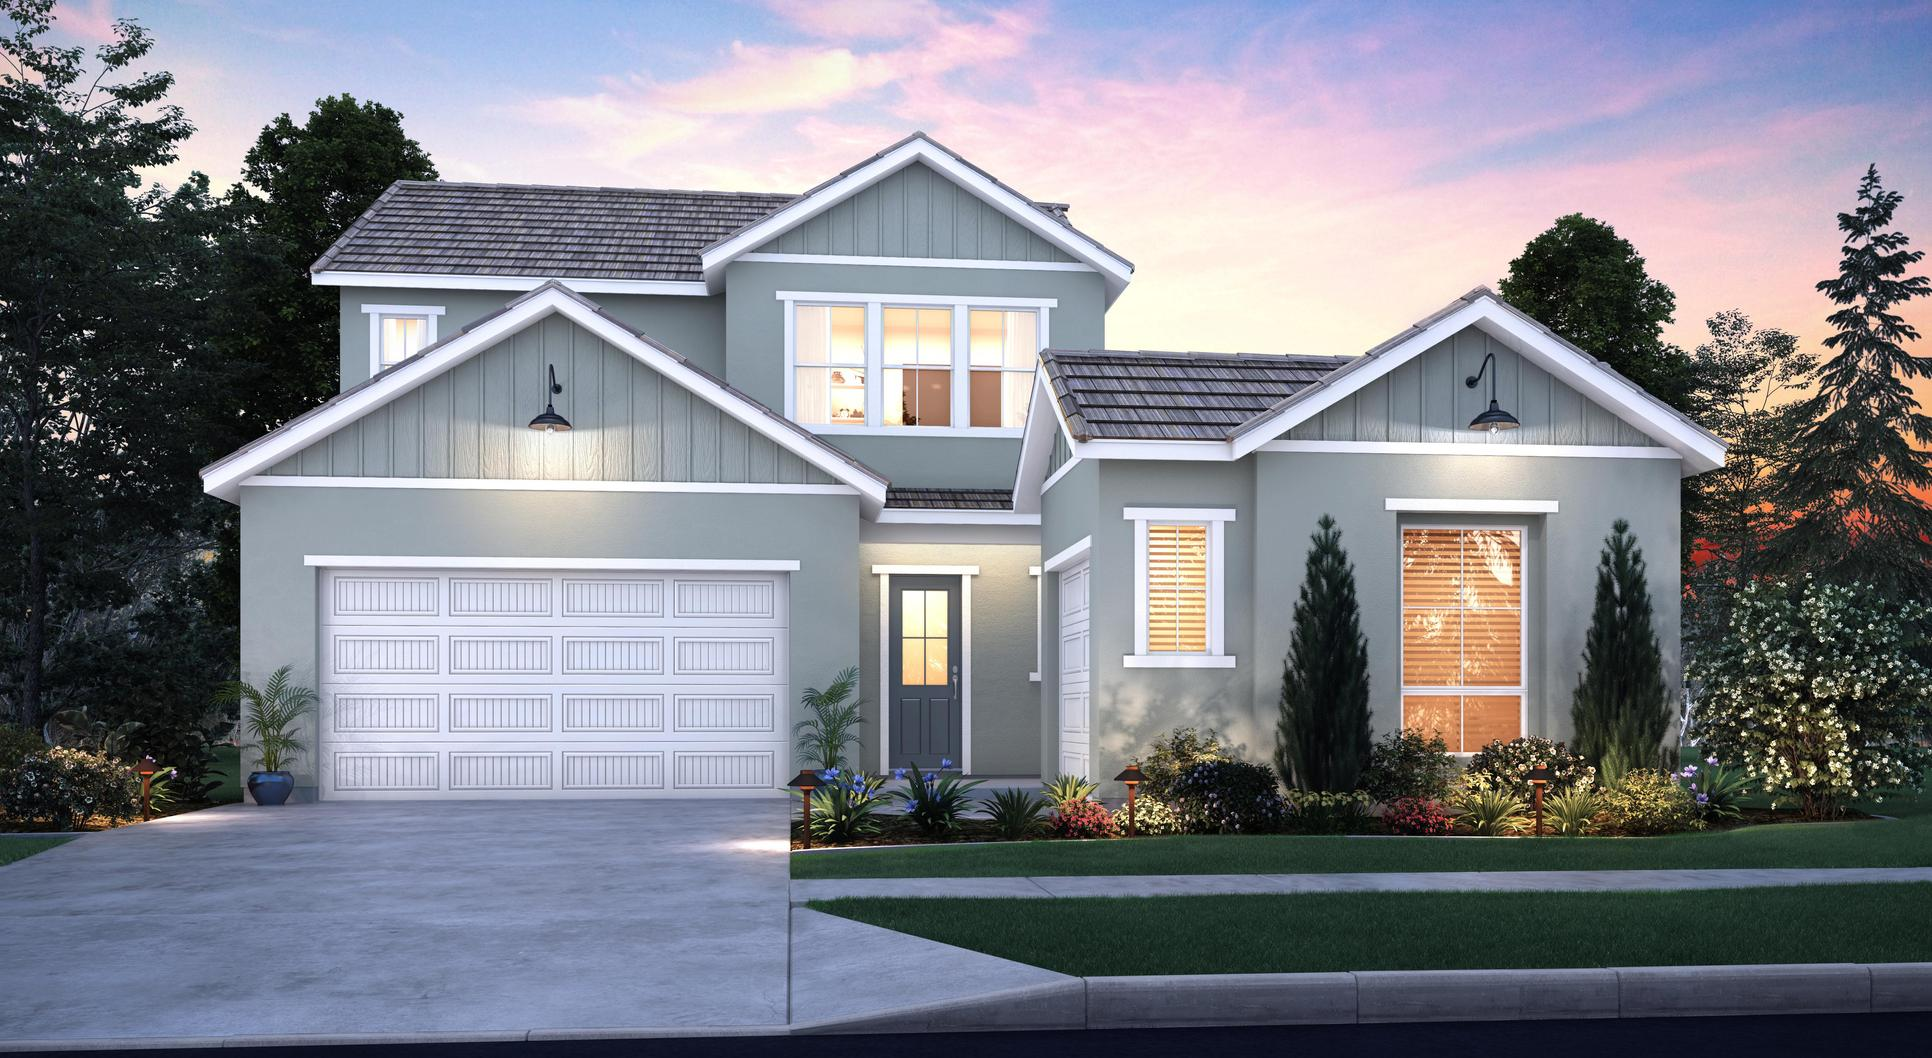 Elevation A:Modern Sierra Ranch